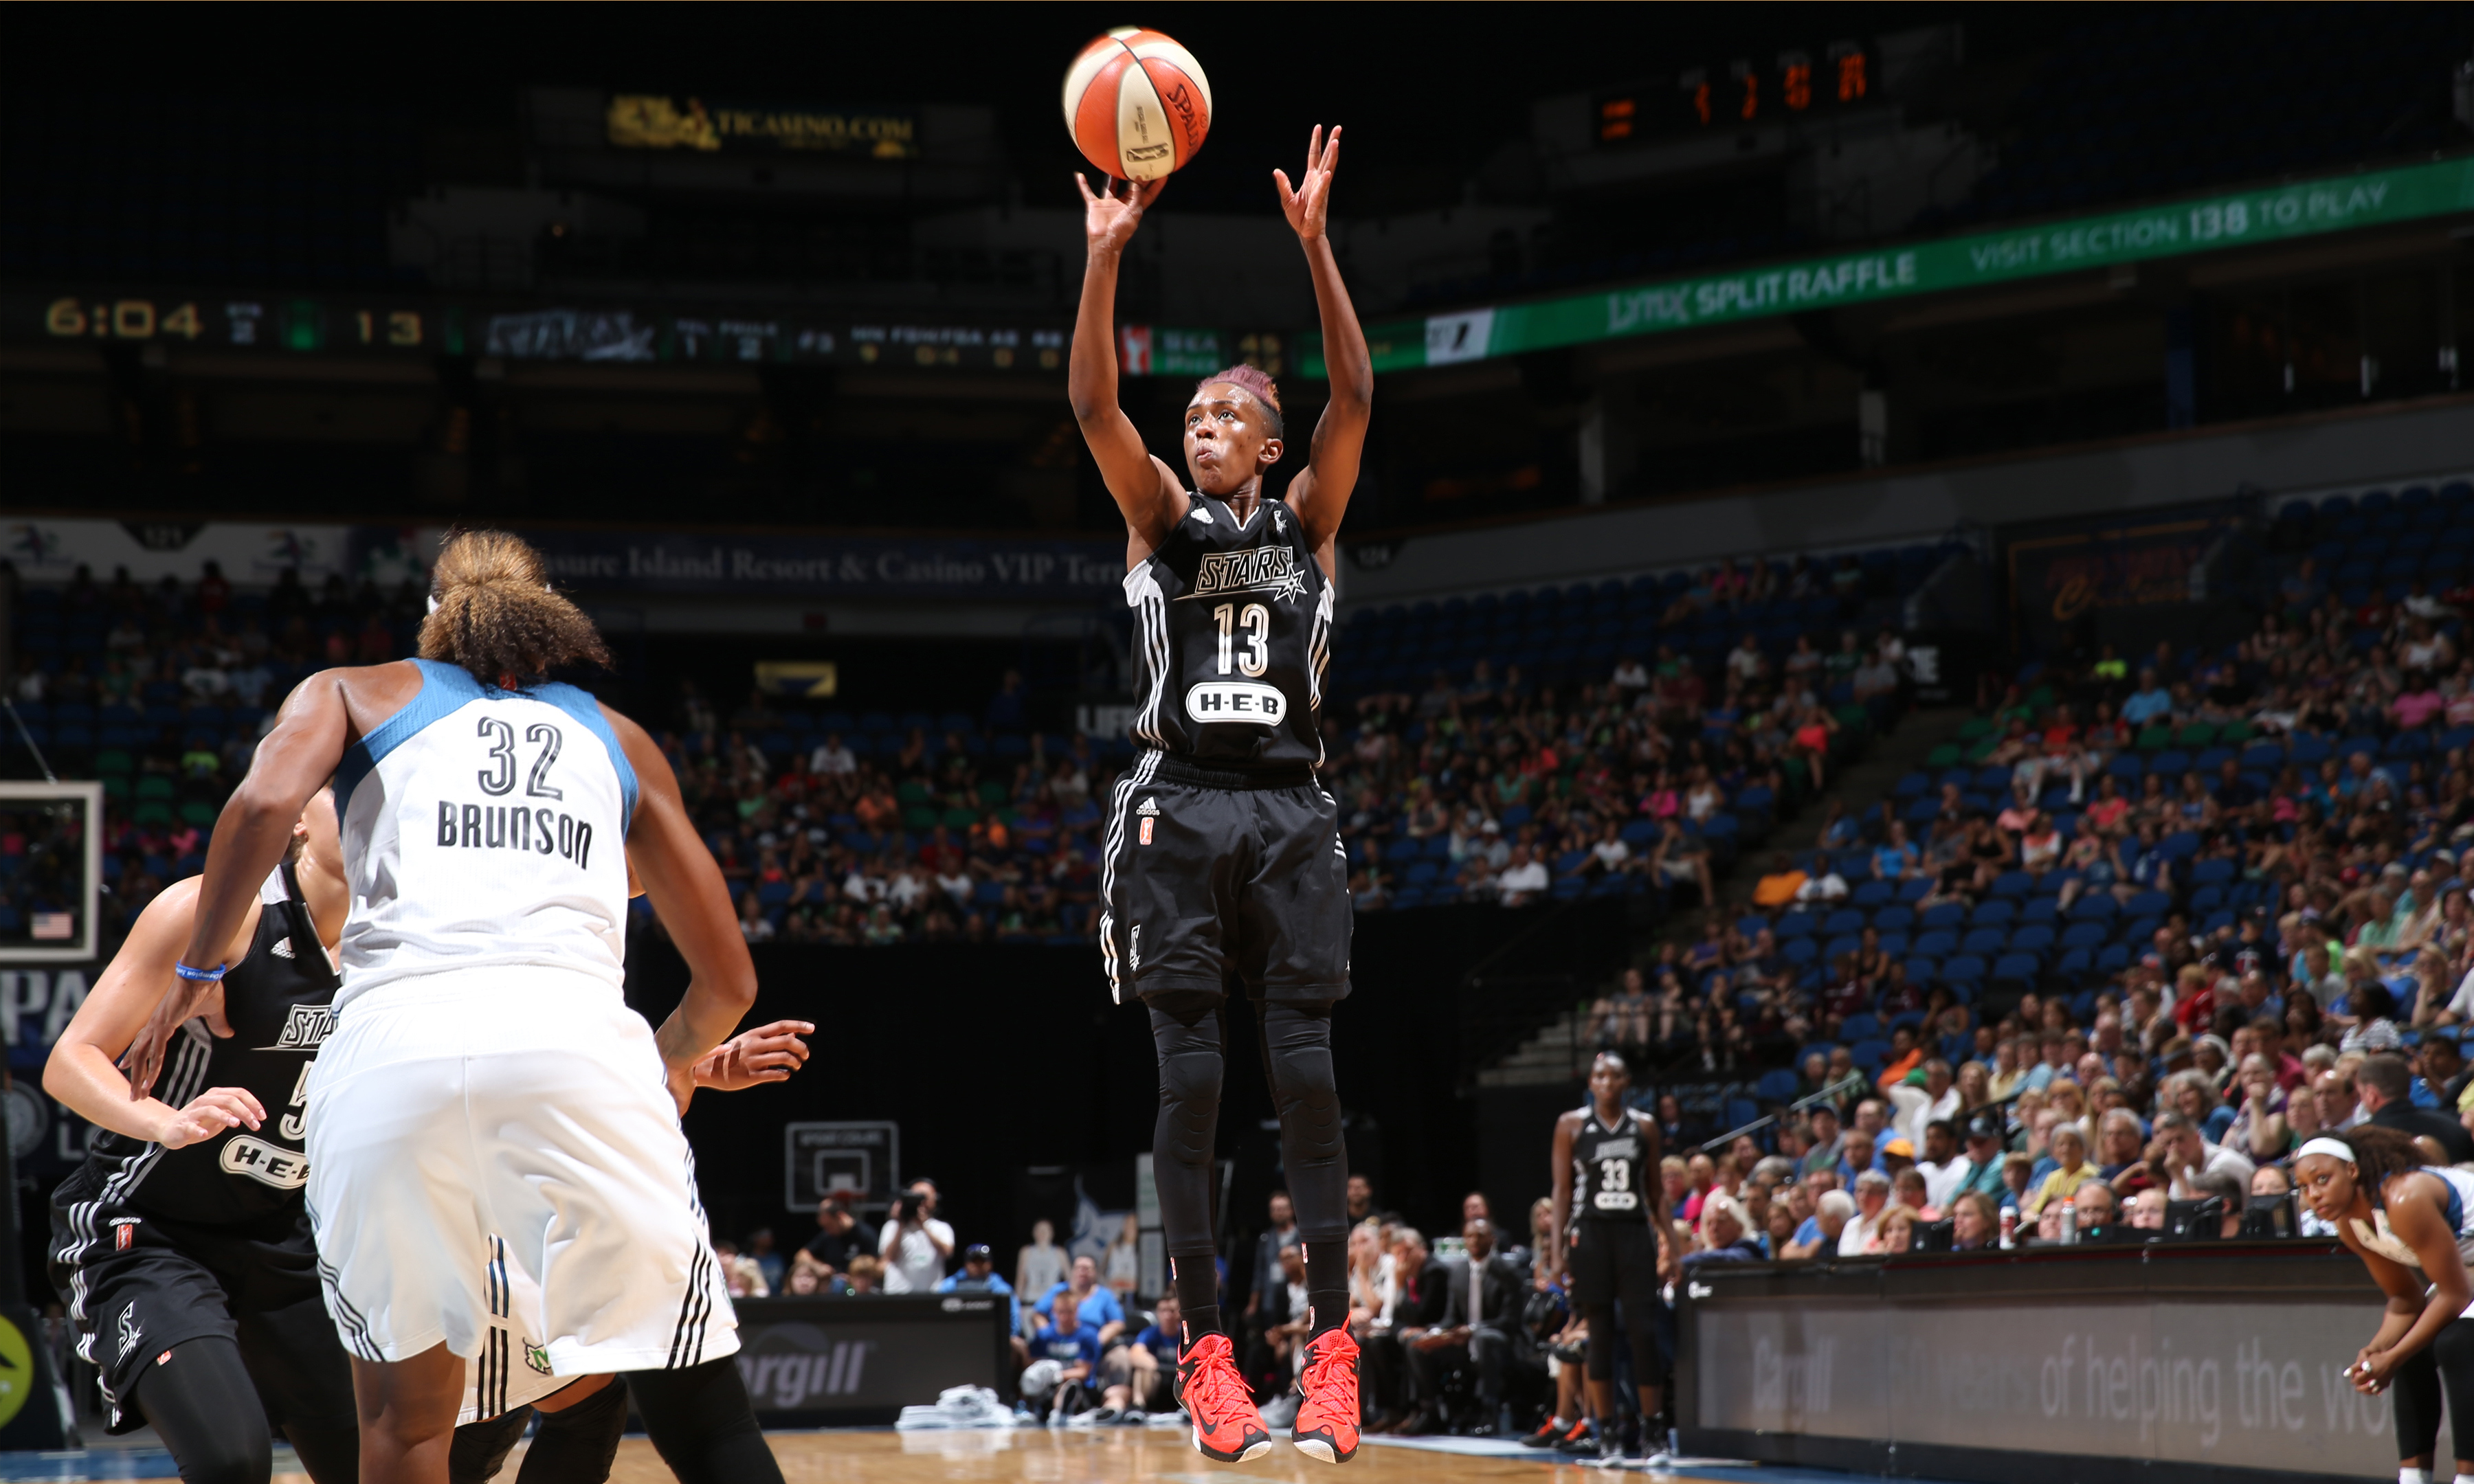 Stars guard Danielle Robinson struggled to find her shot last night, shooting just 2-of-8 (25 percent) from the field for five points to go along with her three rebounds and two assists.